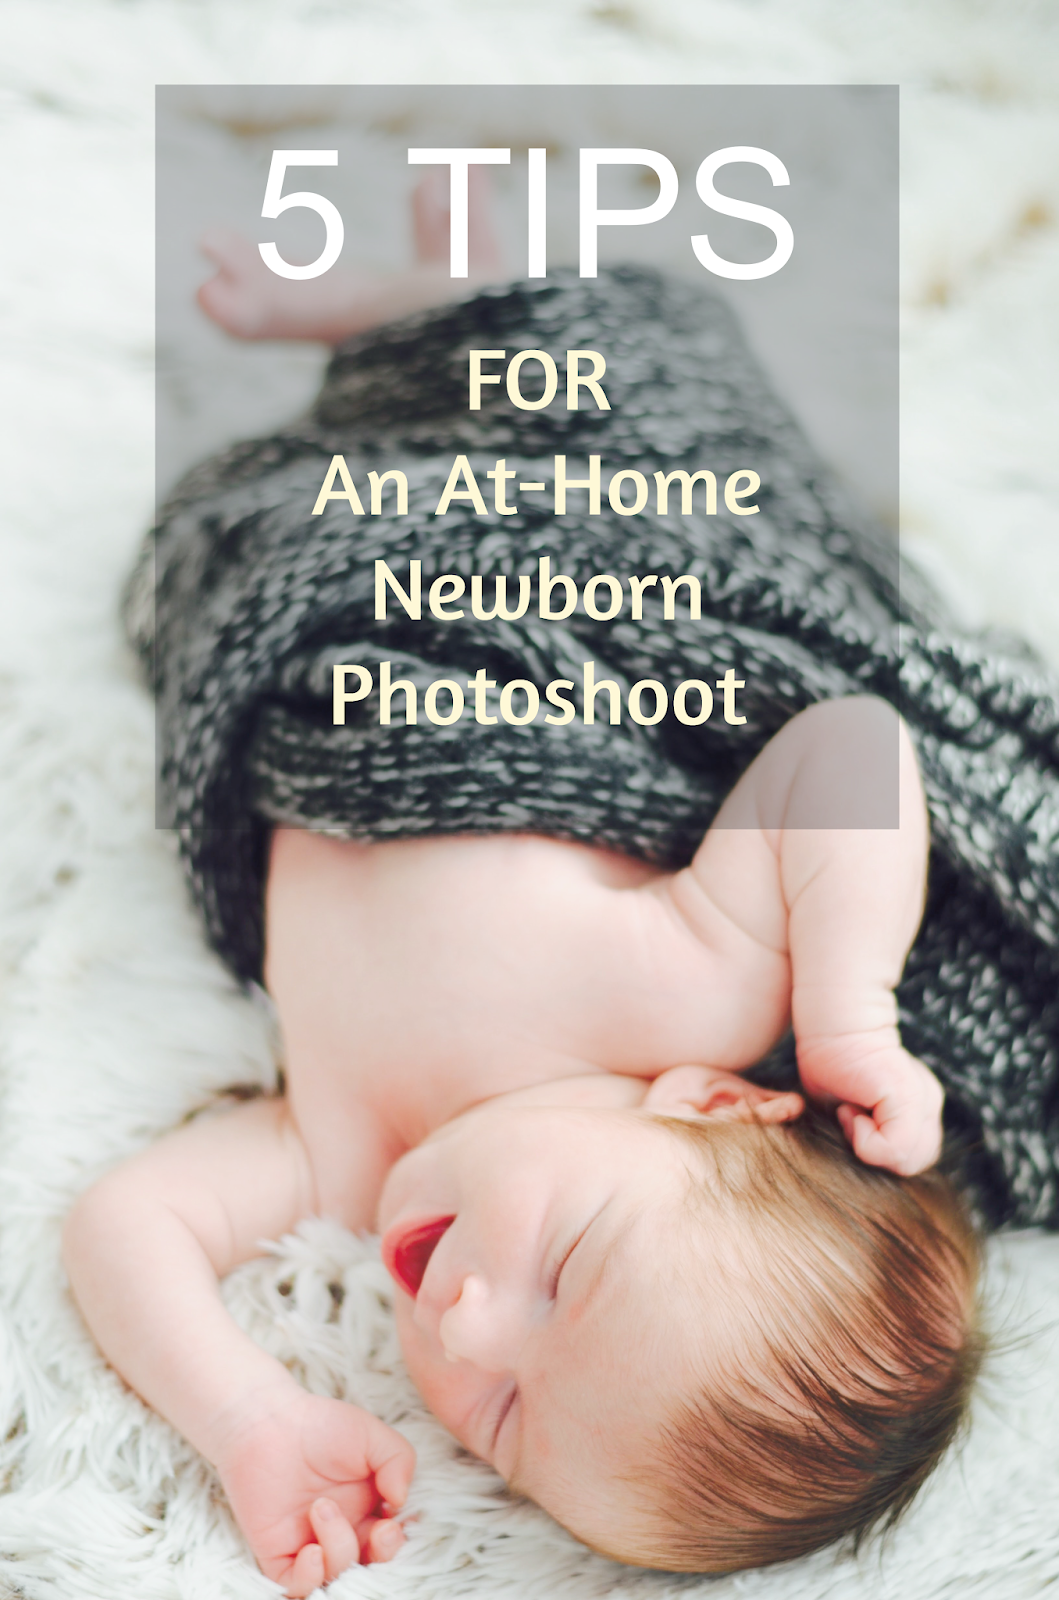 5 tips for an at-home newborn photoshoot